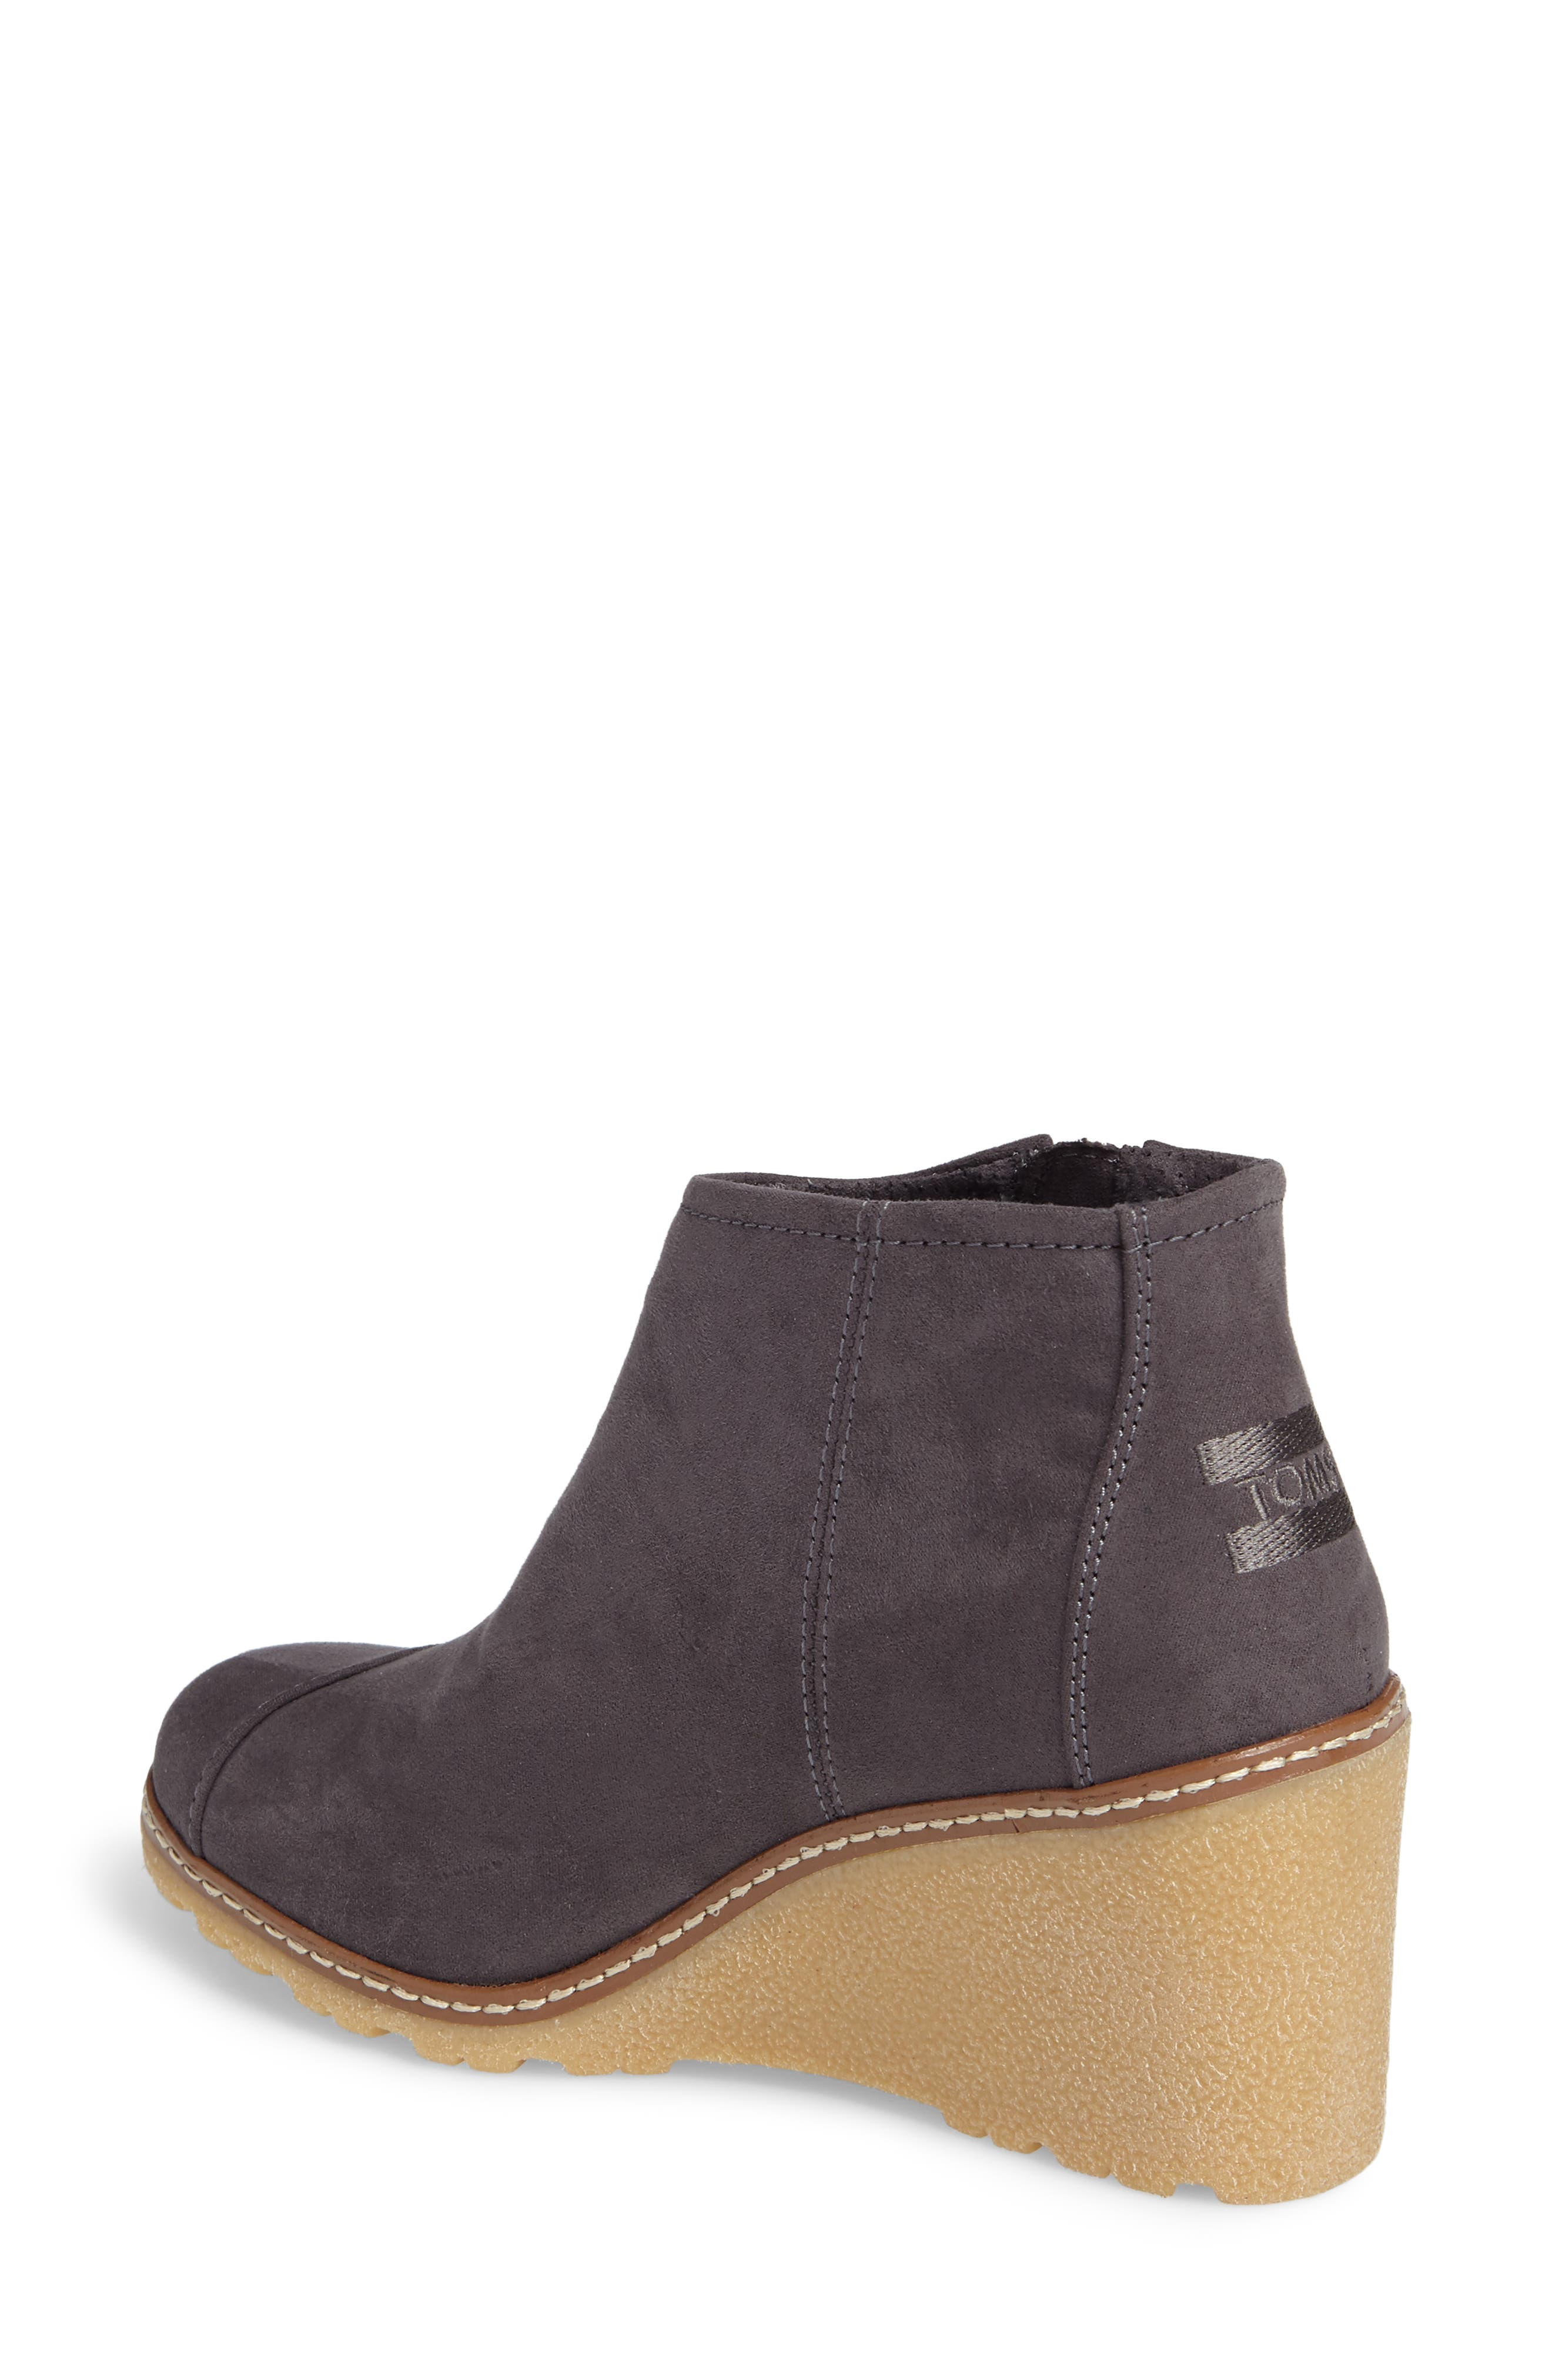 7510f9083f2 TOMS Boots for Women